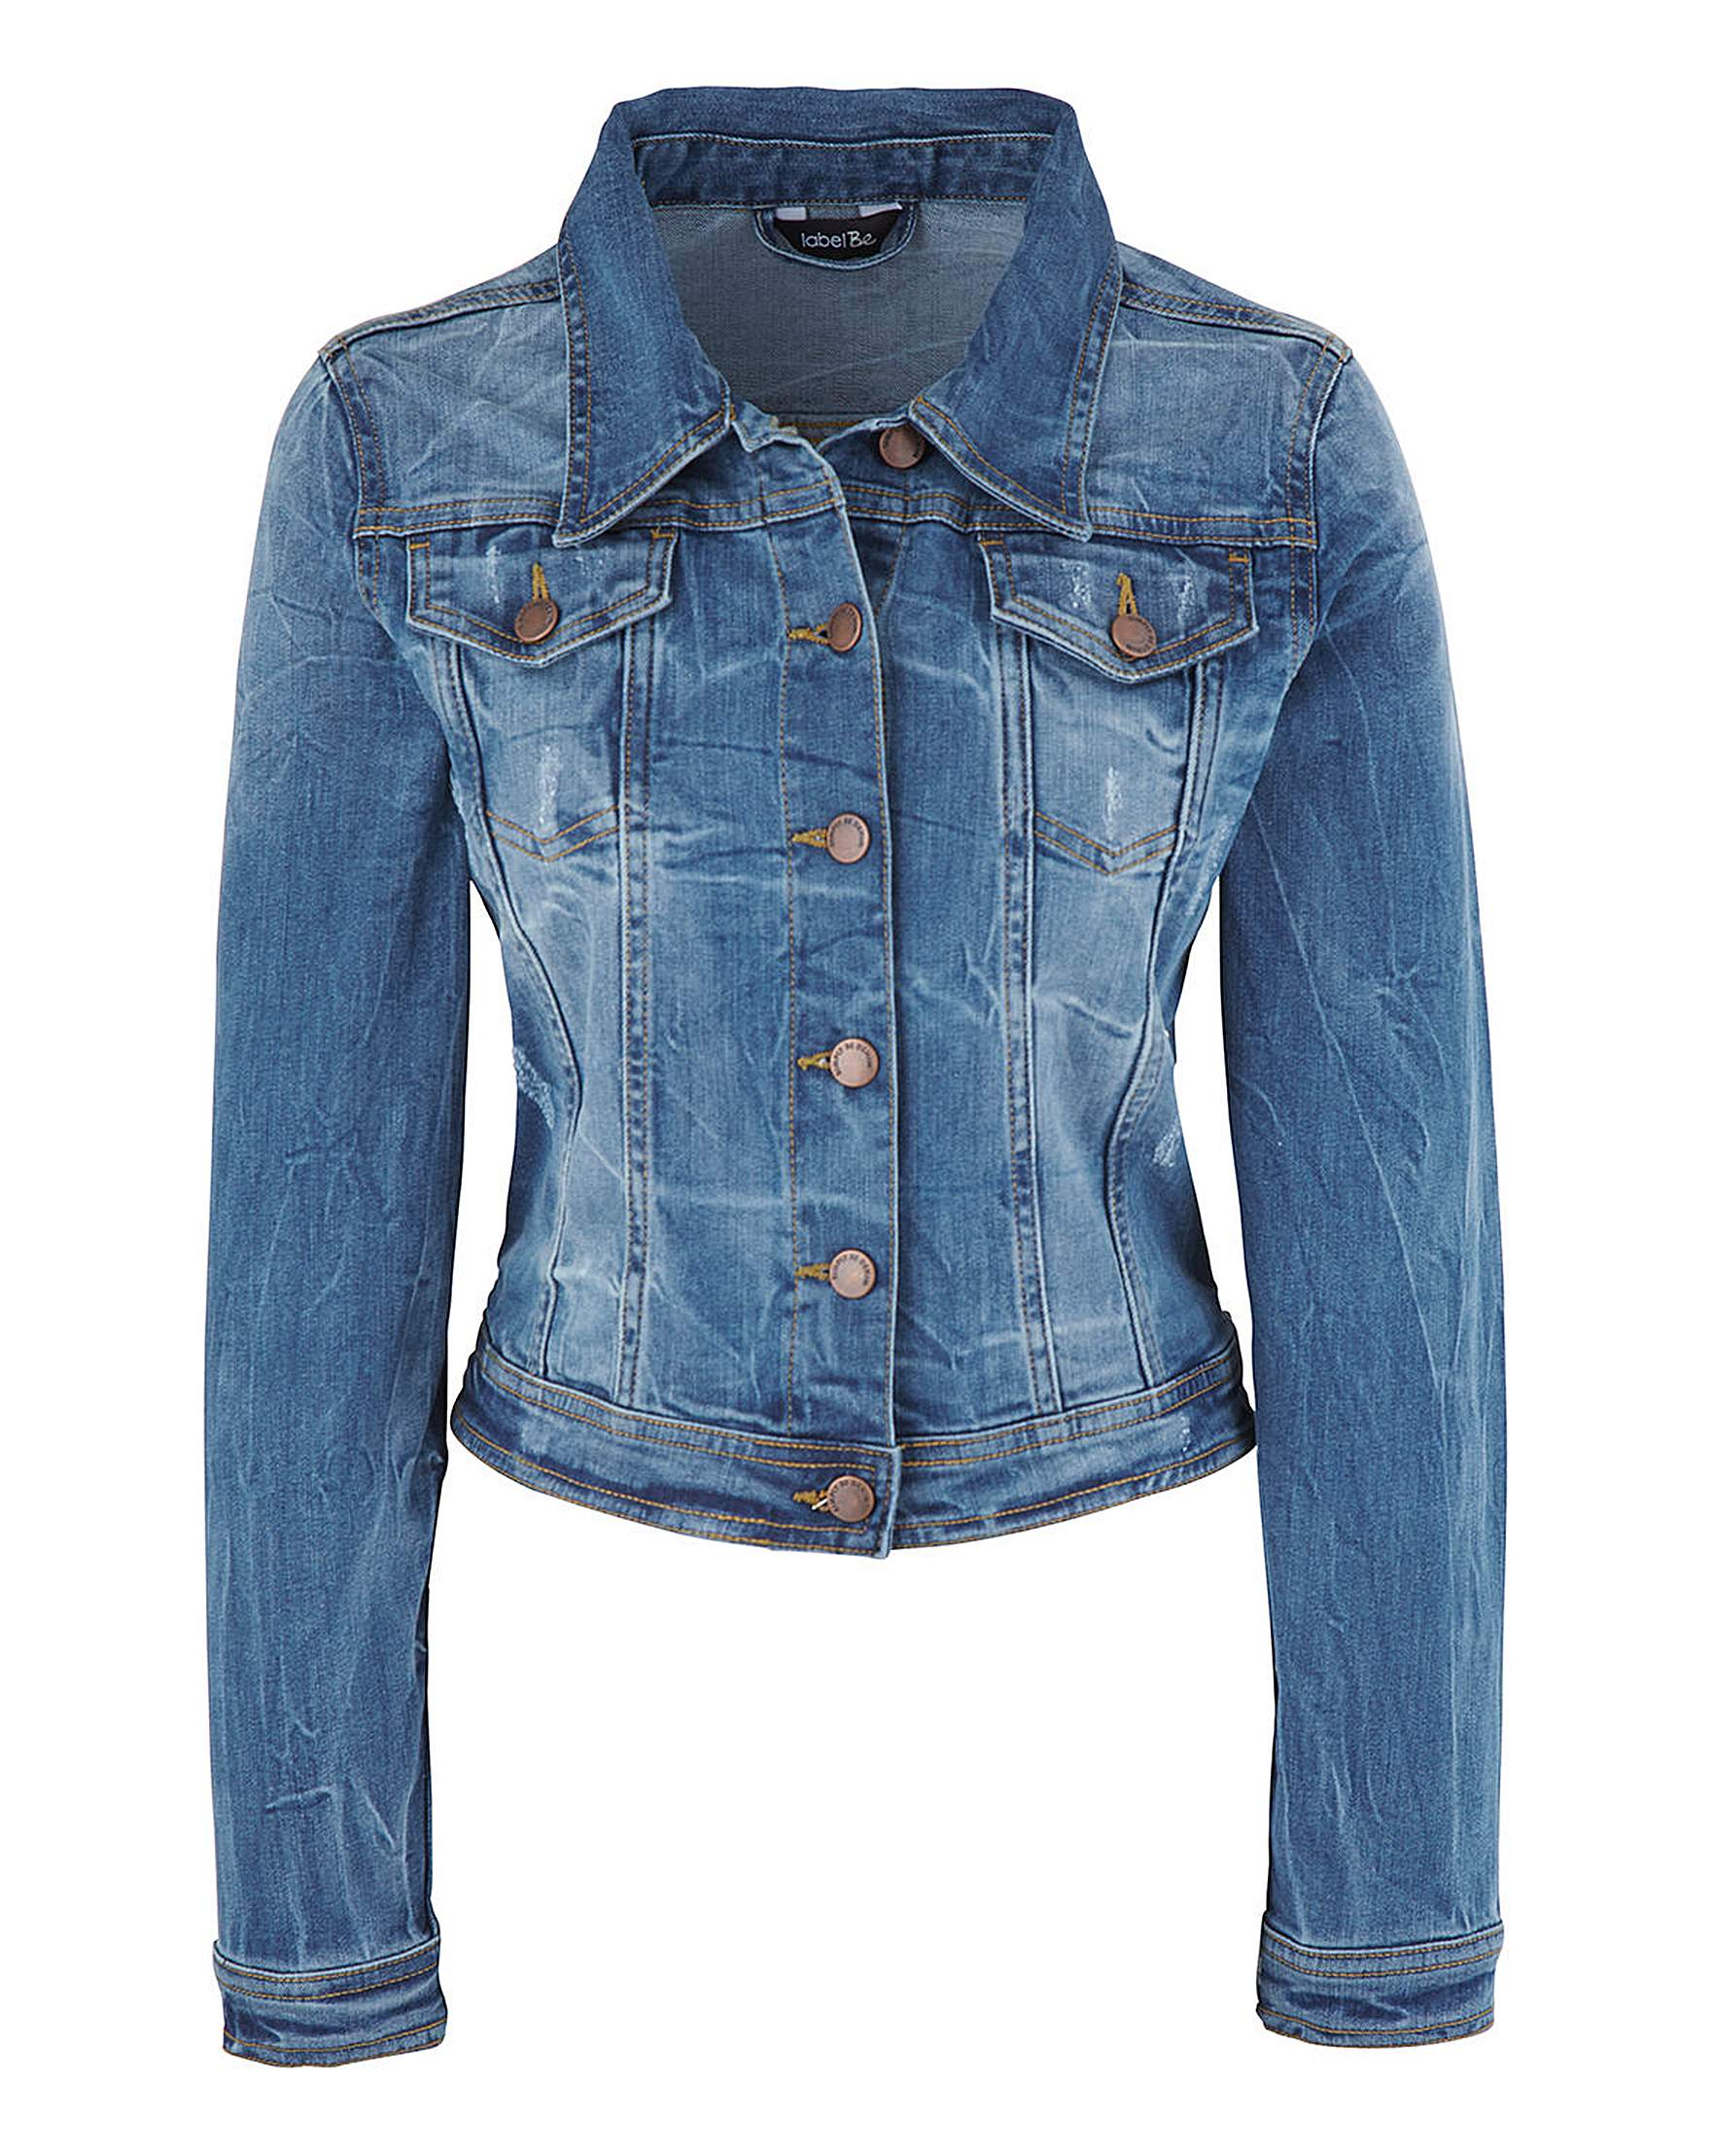 Stonewash Denim Jacket | Simply Be